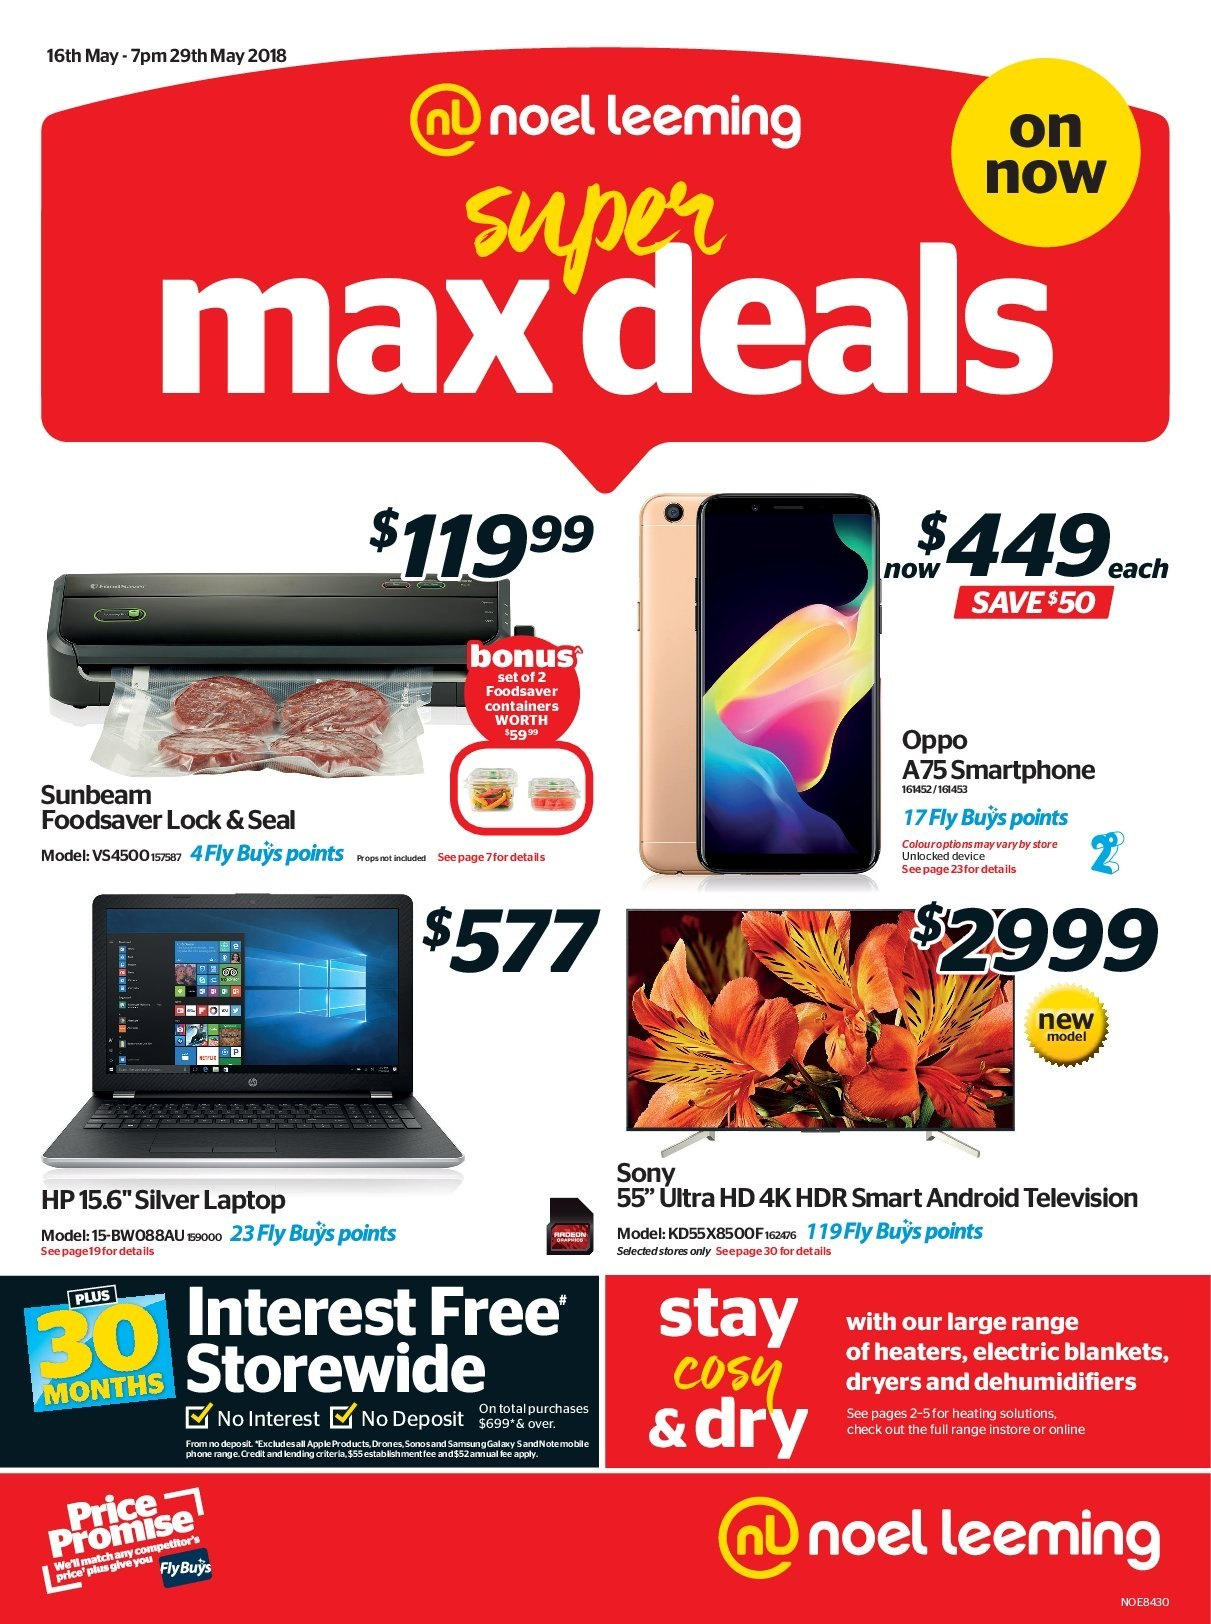 Noel Leeming mailer - 16.05.2018 - 29.05.2018 - Sales products - android, blanket, drone, laptop, sony, uhd tv, ultra hd, hp, smartphone. Page 1.